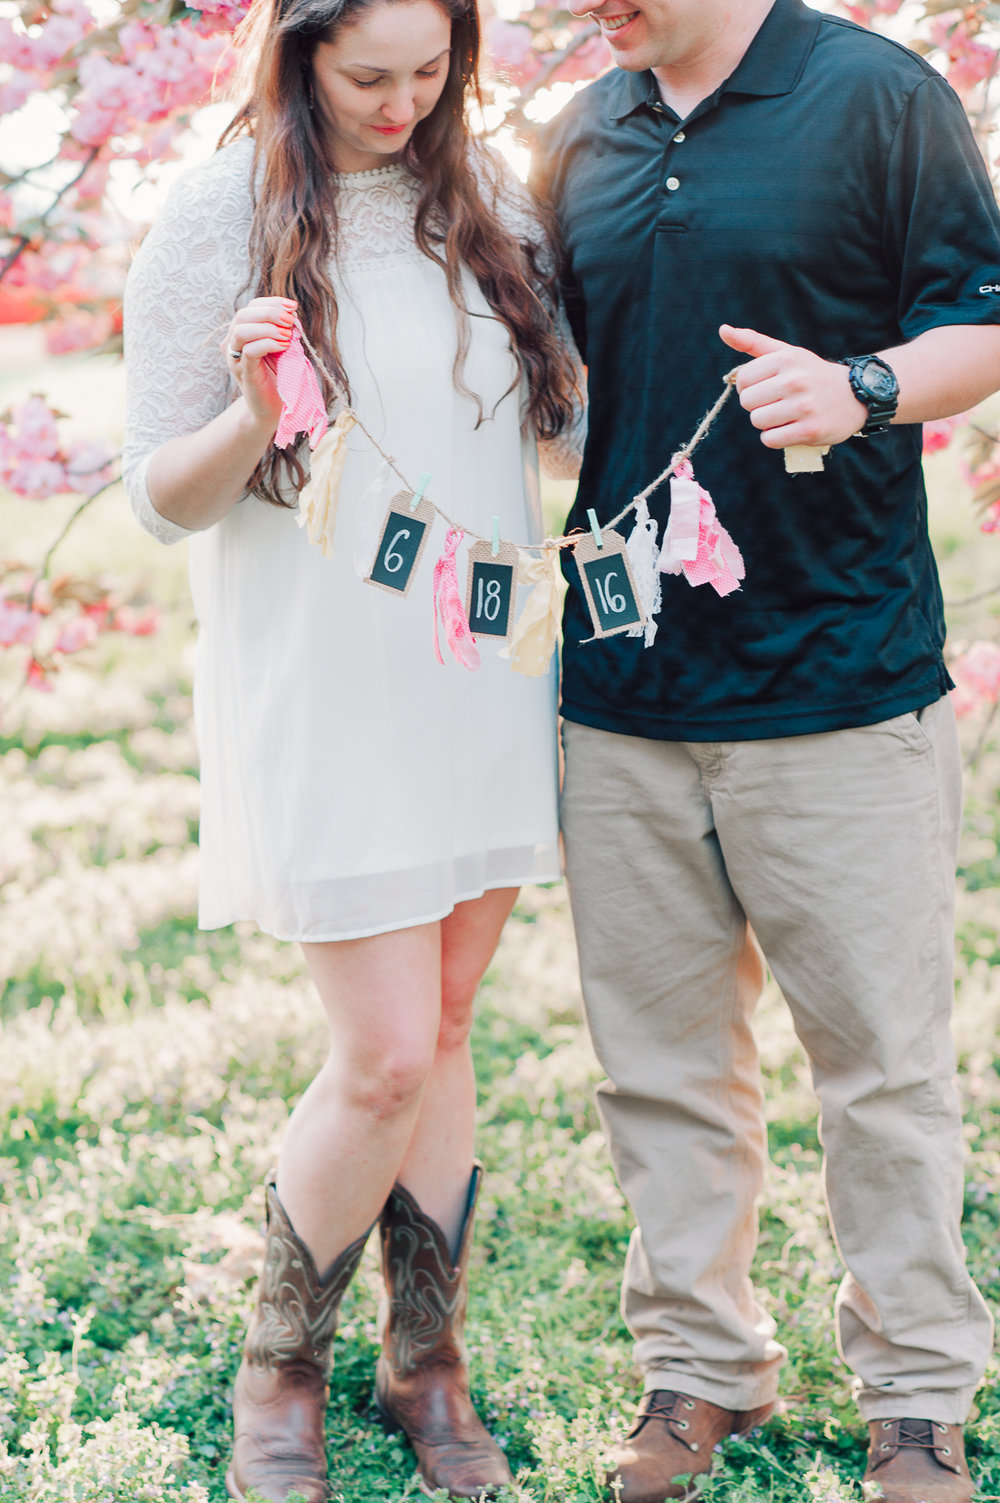 engagement_cherryblossoms_virginiaweddingphotographer_JanieHunter (13).jpg